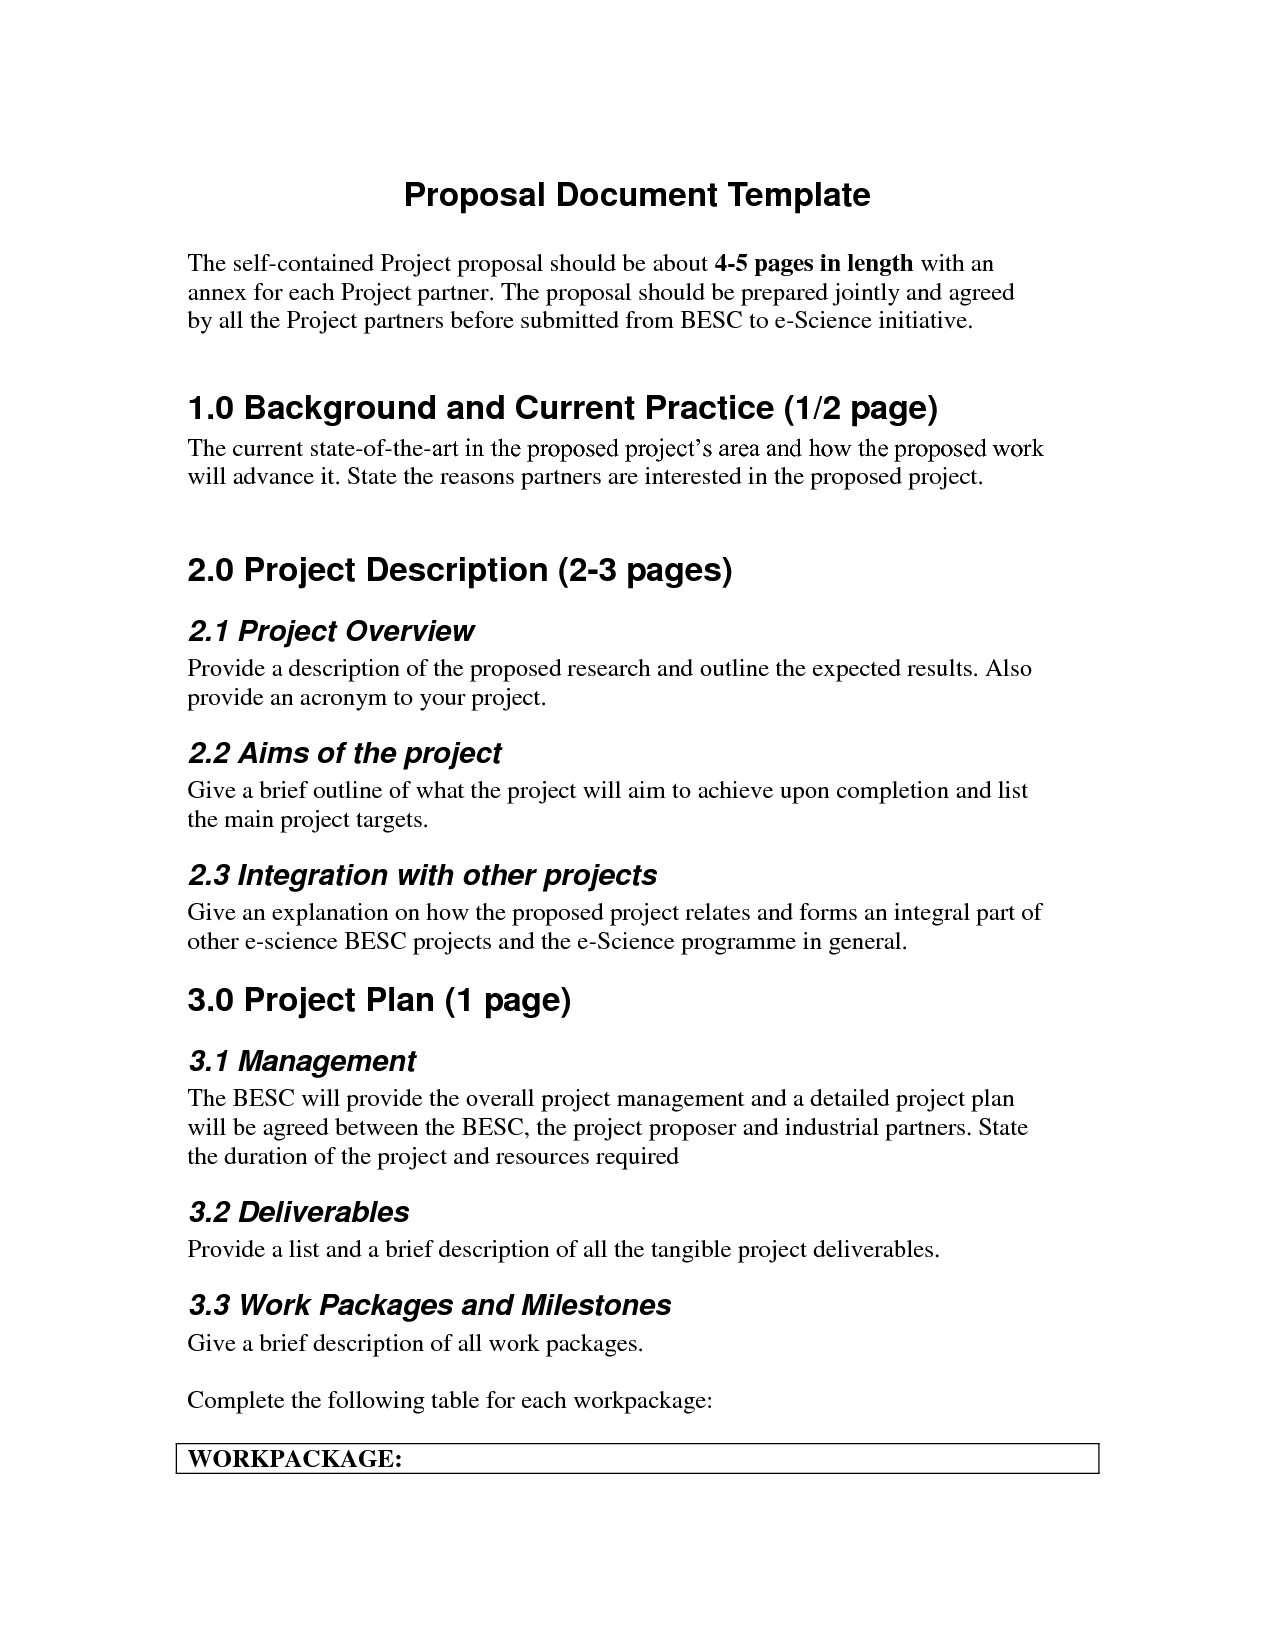 Essay On Business Essay Proposal Template Proposal Essay Topics Before Students Write A  College Research Paper Essay Papers Online also Comparative Essay Thesis Statement Essay Proposal Template Proposal Essay Topics Before Students  Essay Writing High School